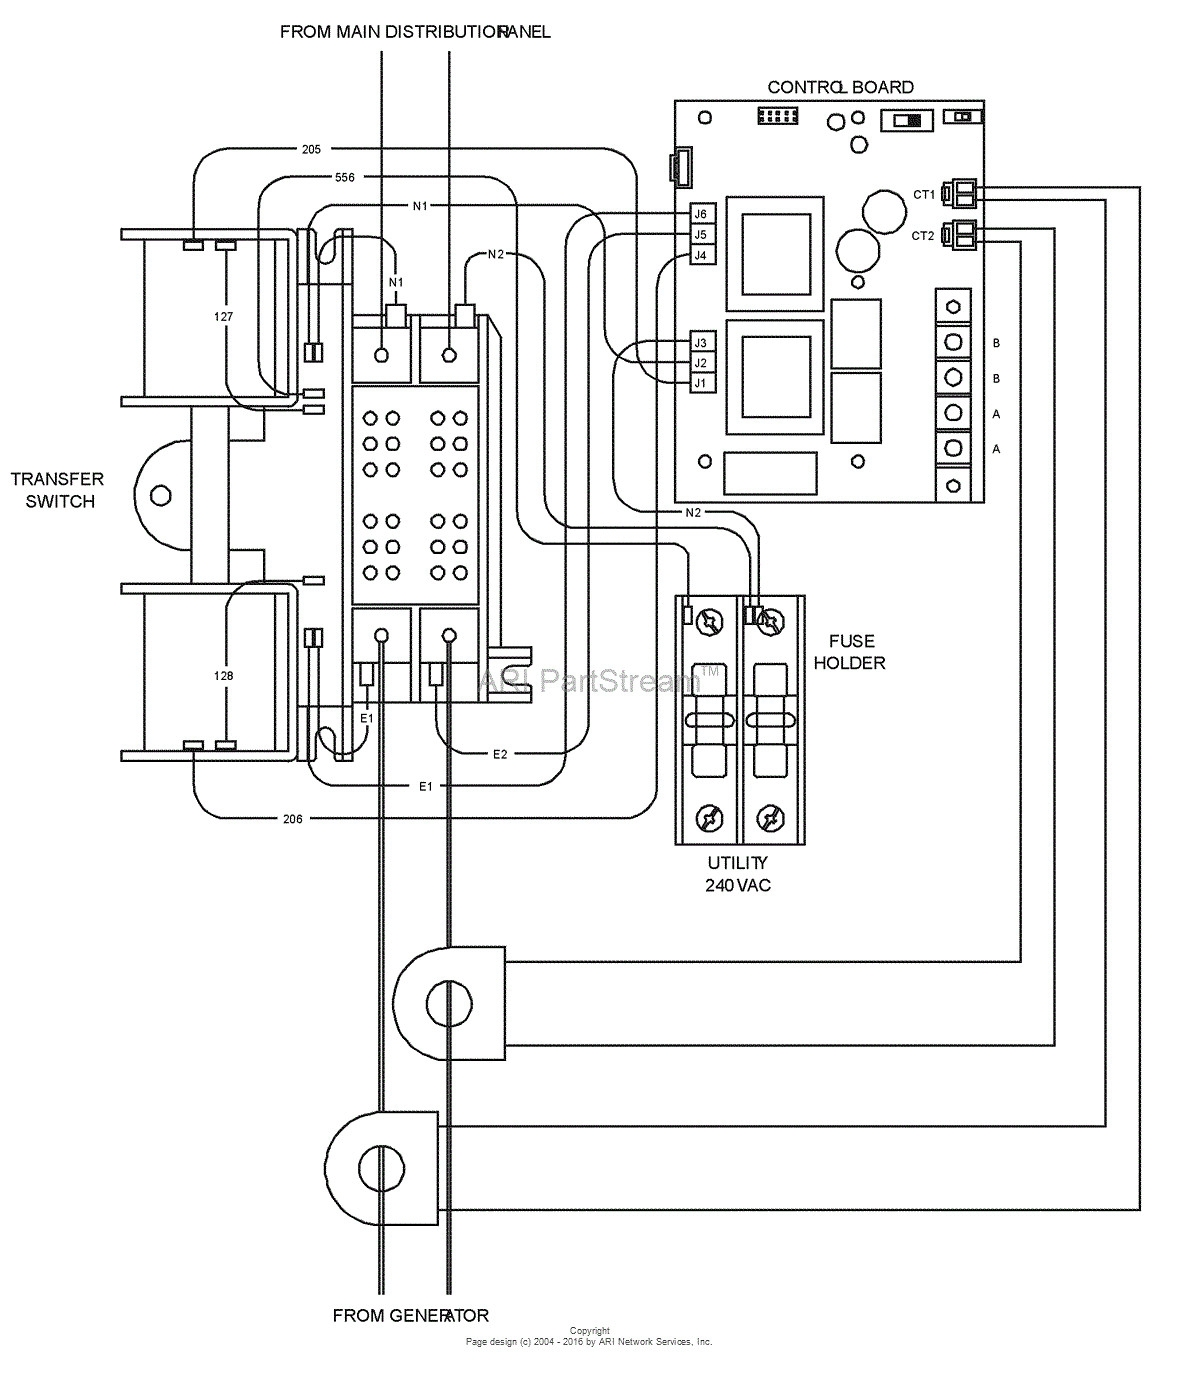 hight resolution of reliance transfer switch wiring diagram wiring diagram pics detail name protran transfer switch wiring diagram